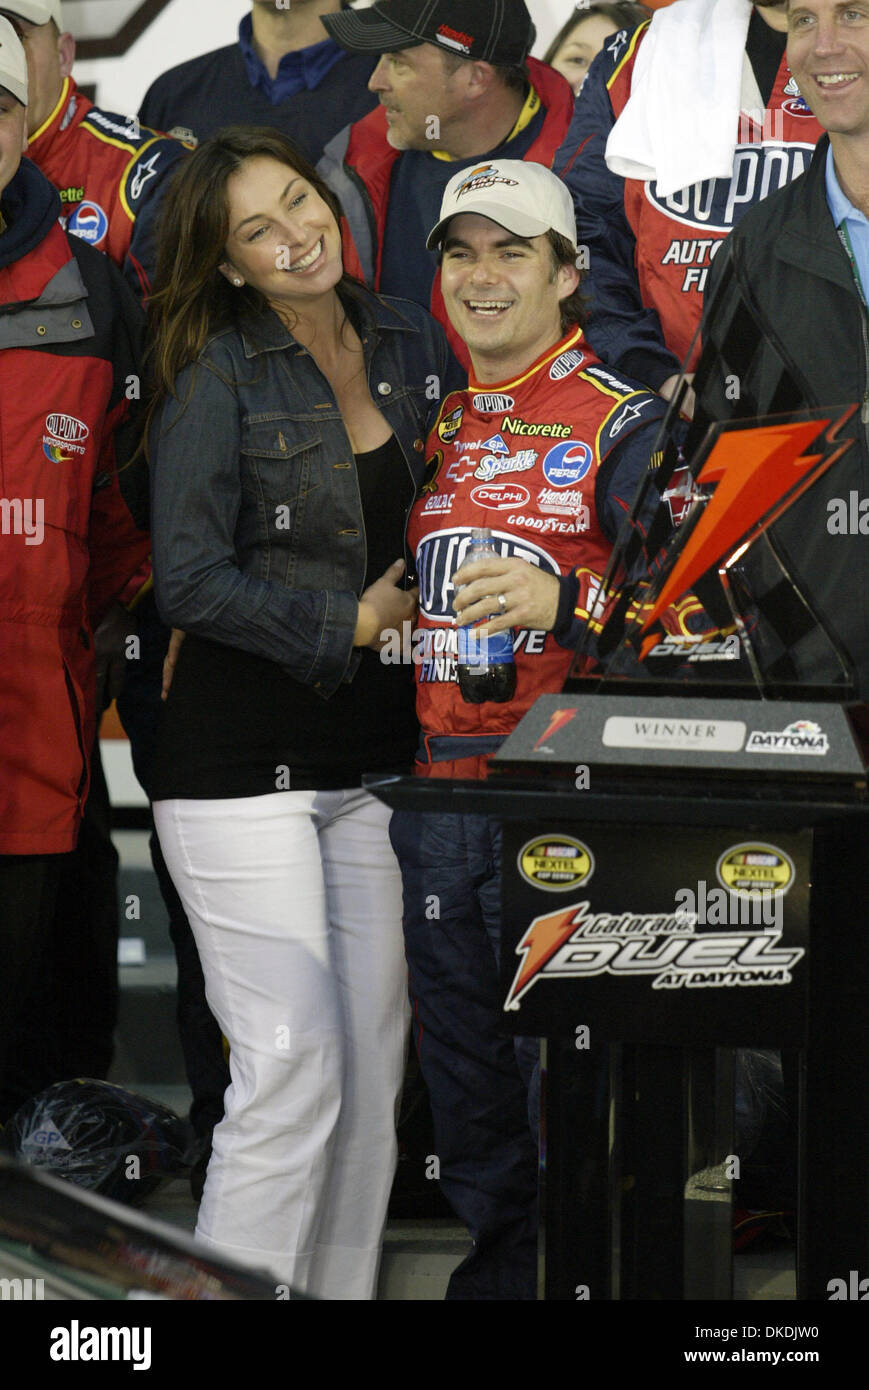 Feb 15 2007 Daytona Beach Fl Usa Jeff Gordon 24 With His Stock Photo Alamy